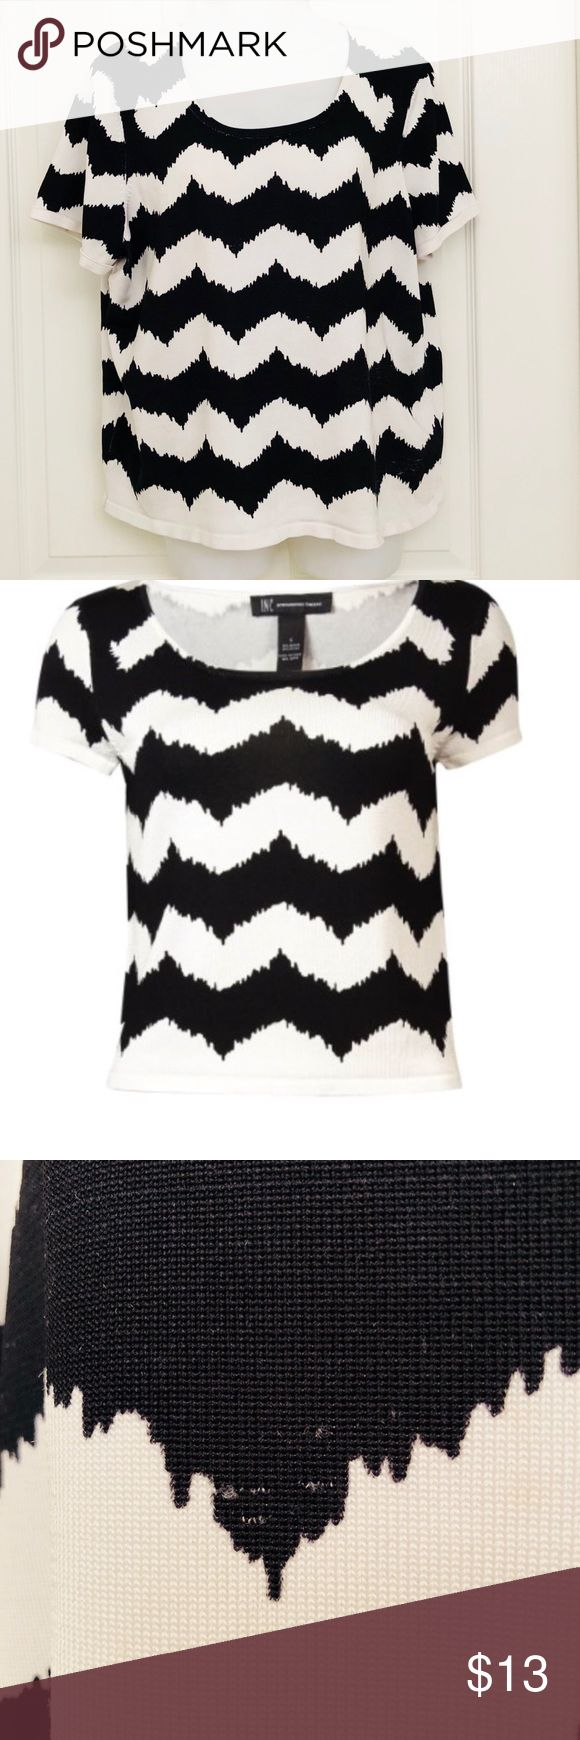 INC black and white chevron top. Short sleeve. 1x International concepts  chevron top black and white  size 1X  *has Pilling on the front left side please see photos* INC International Concepts Tops Blouses